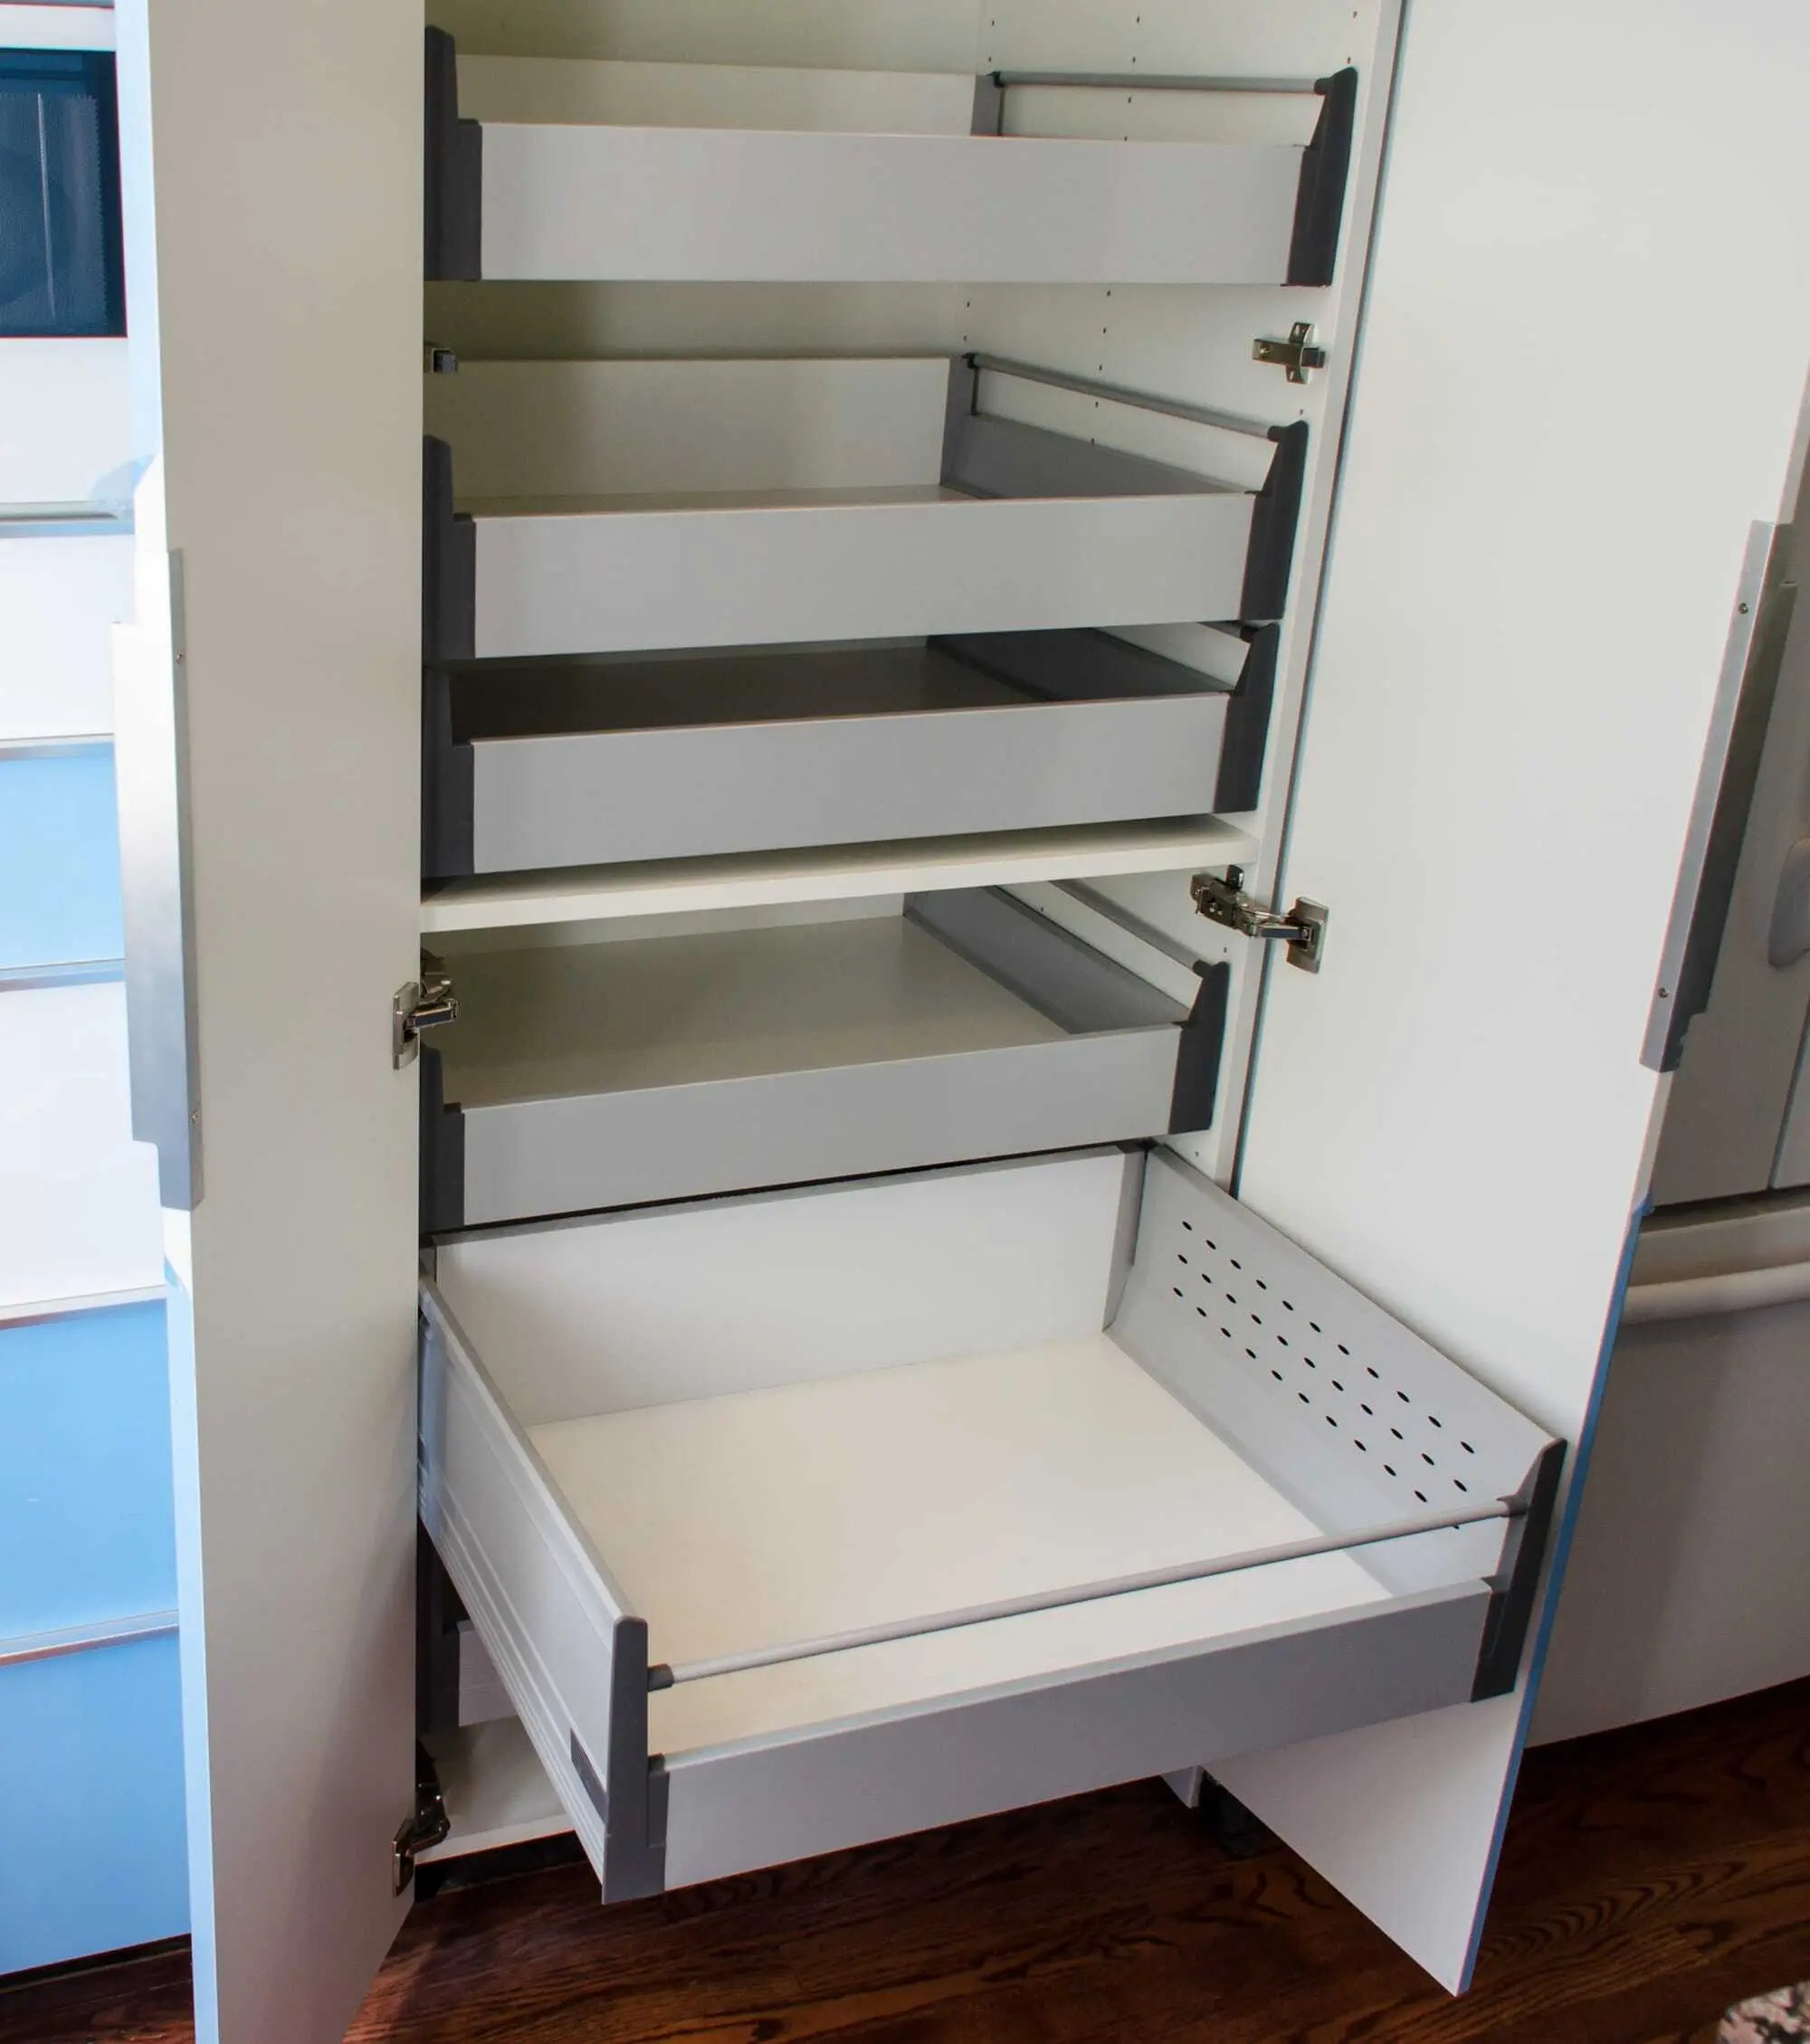 ikea hacks and other fun stuff pull out kitchen cabinet IKEA Blum Tandem Box